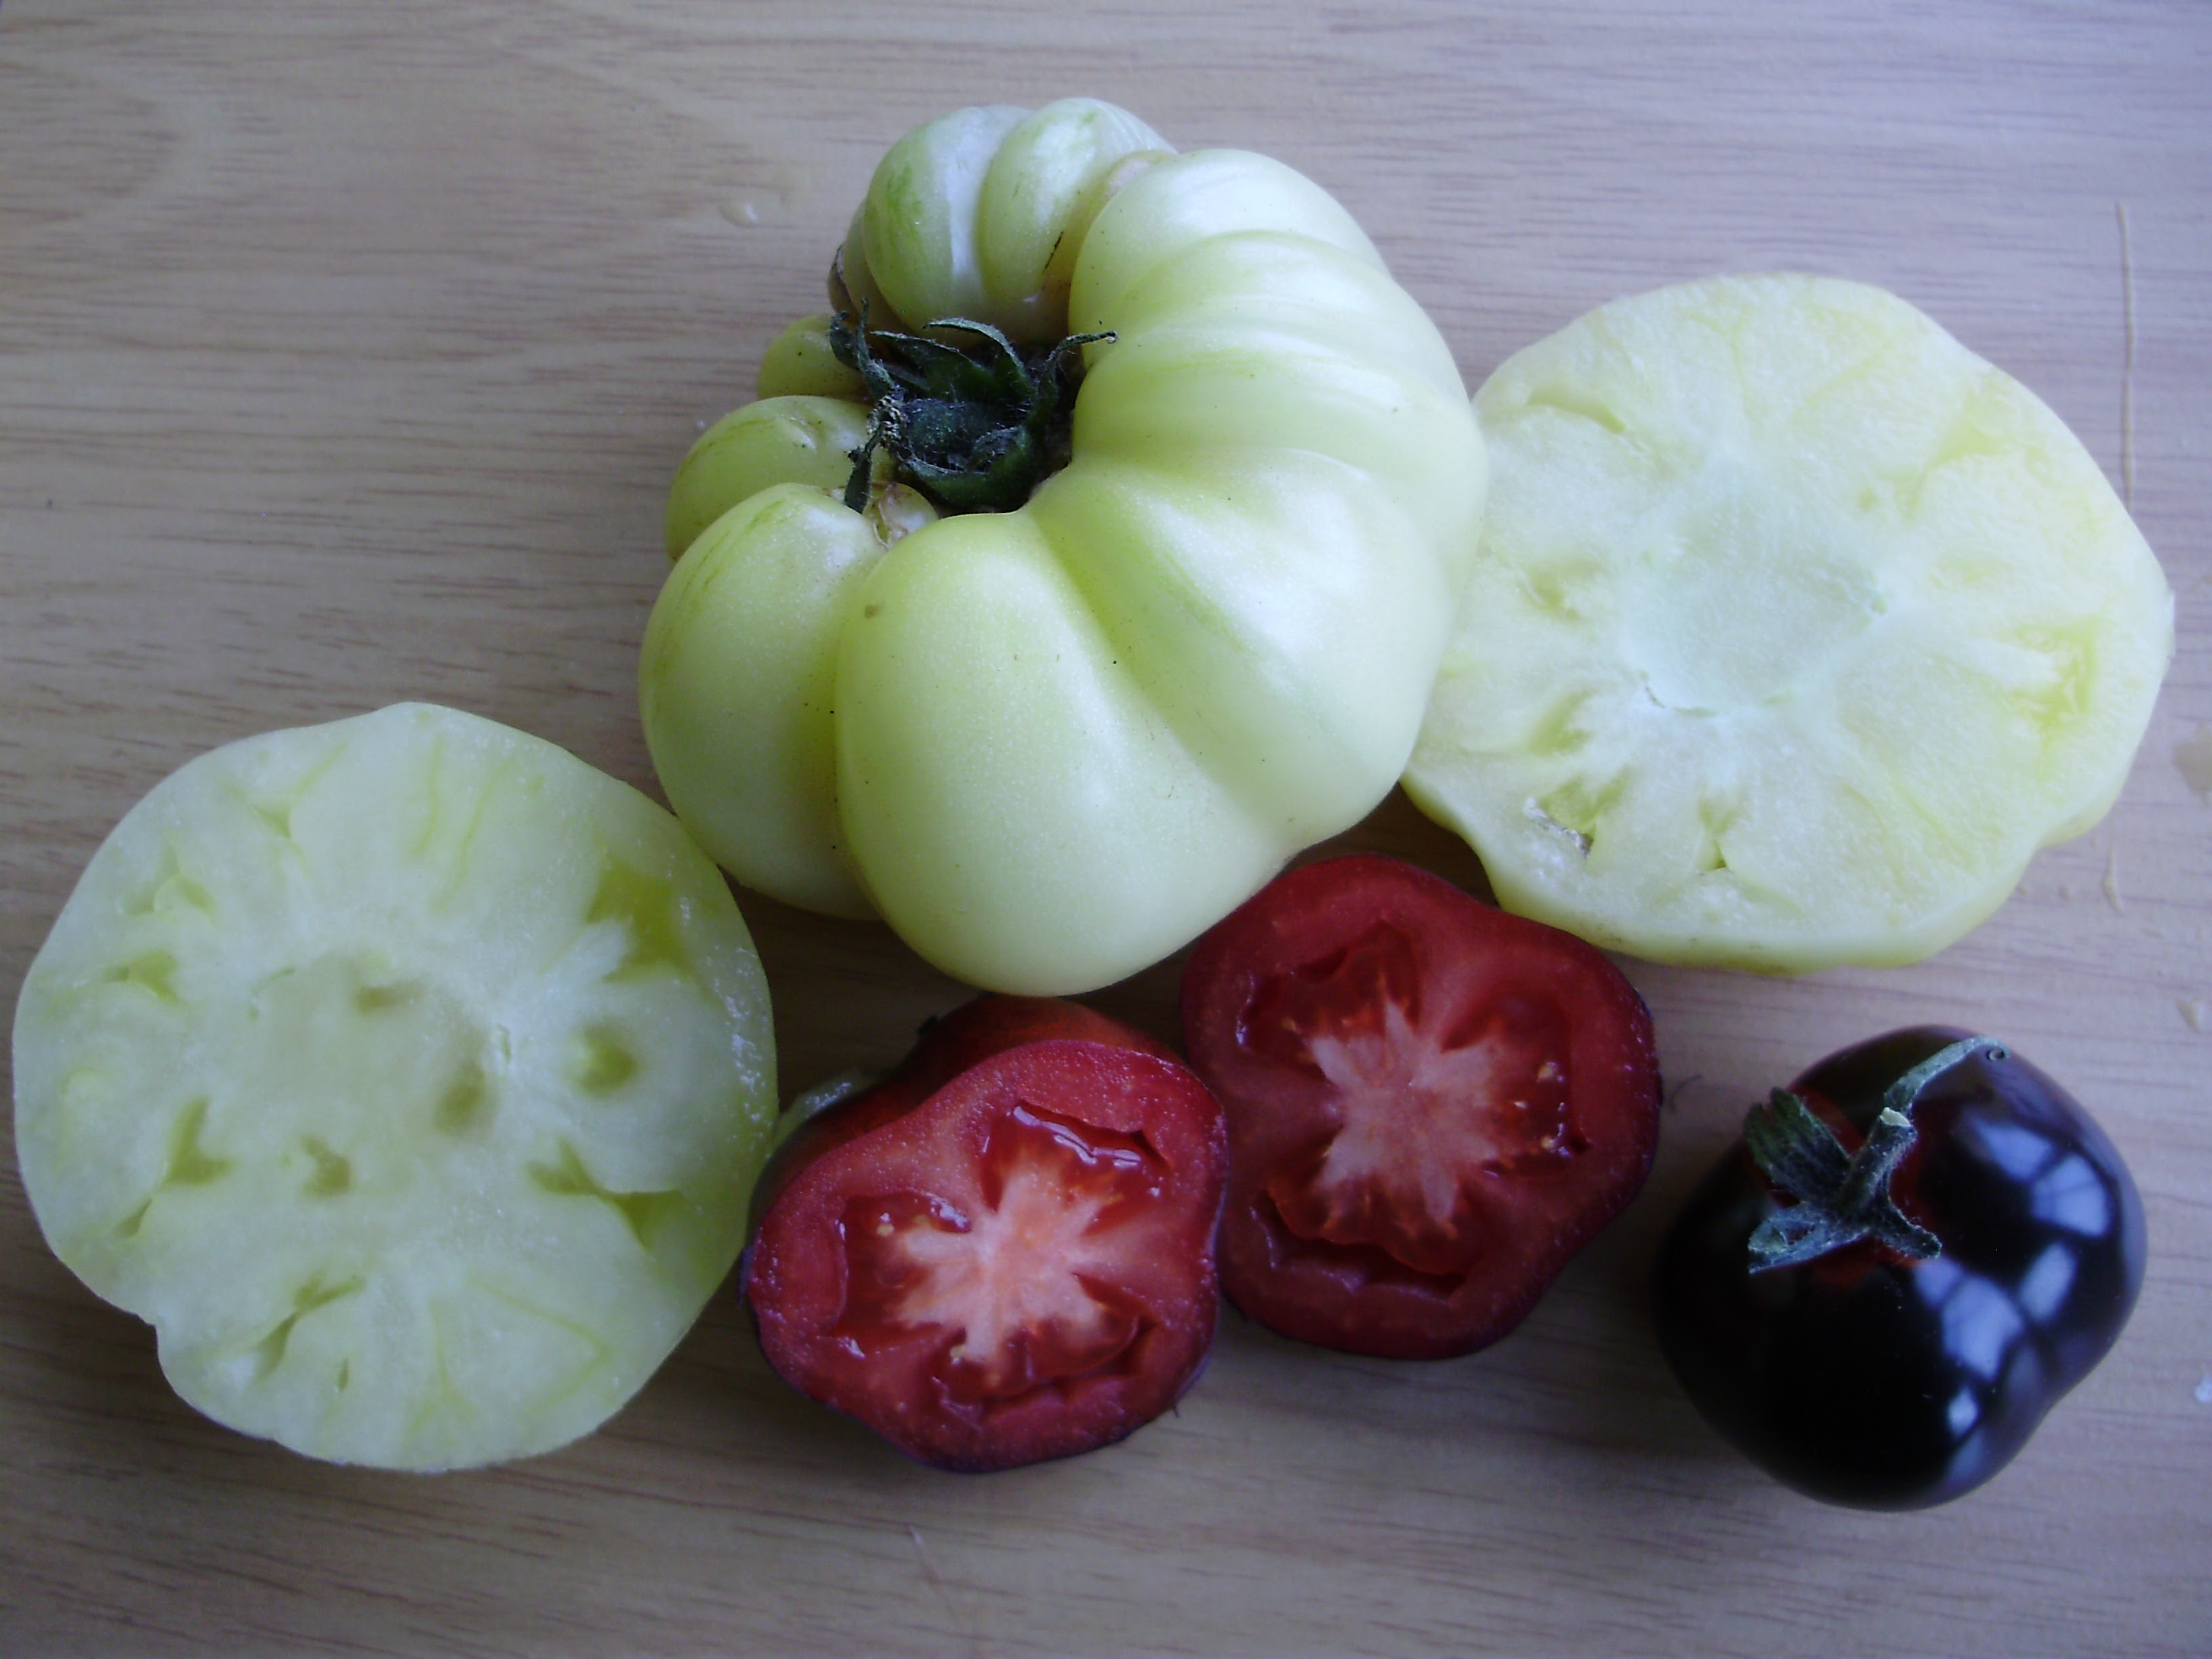 'Ebony and Ivory' - the contrasting colours of tomatoes Indigo Rose & White Queen